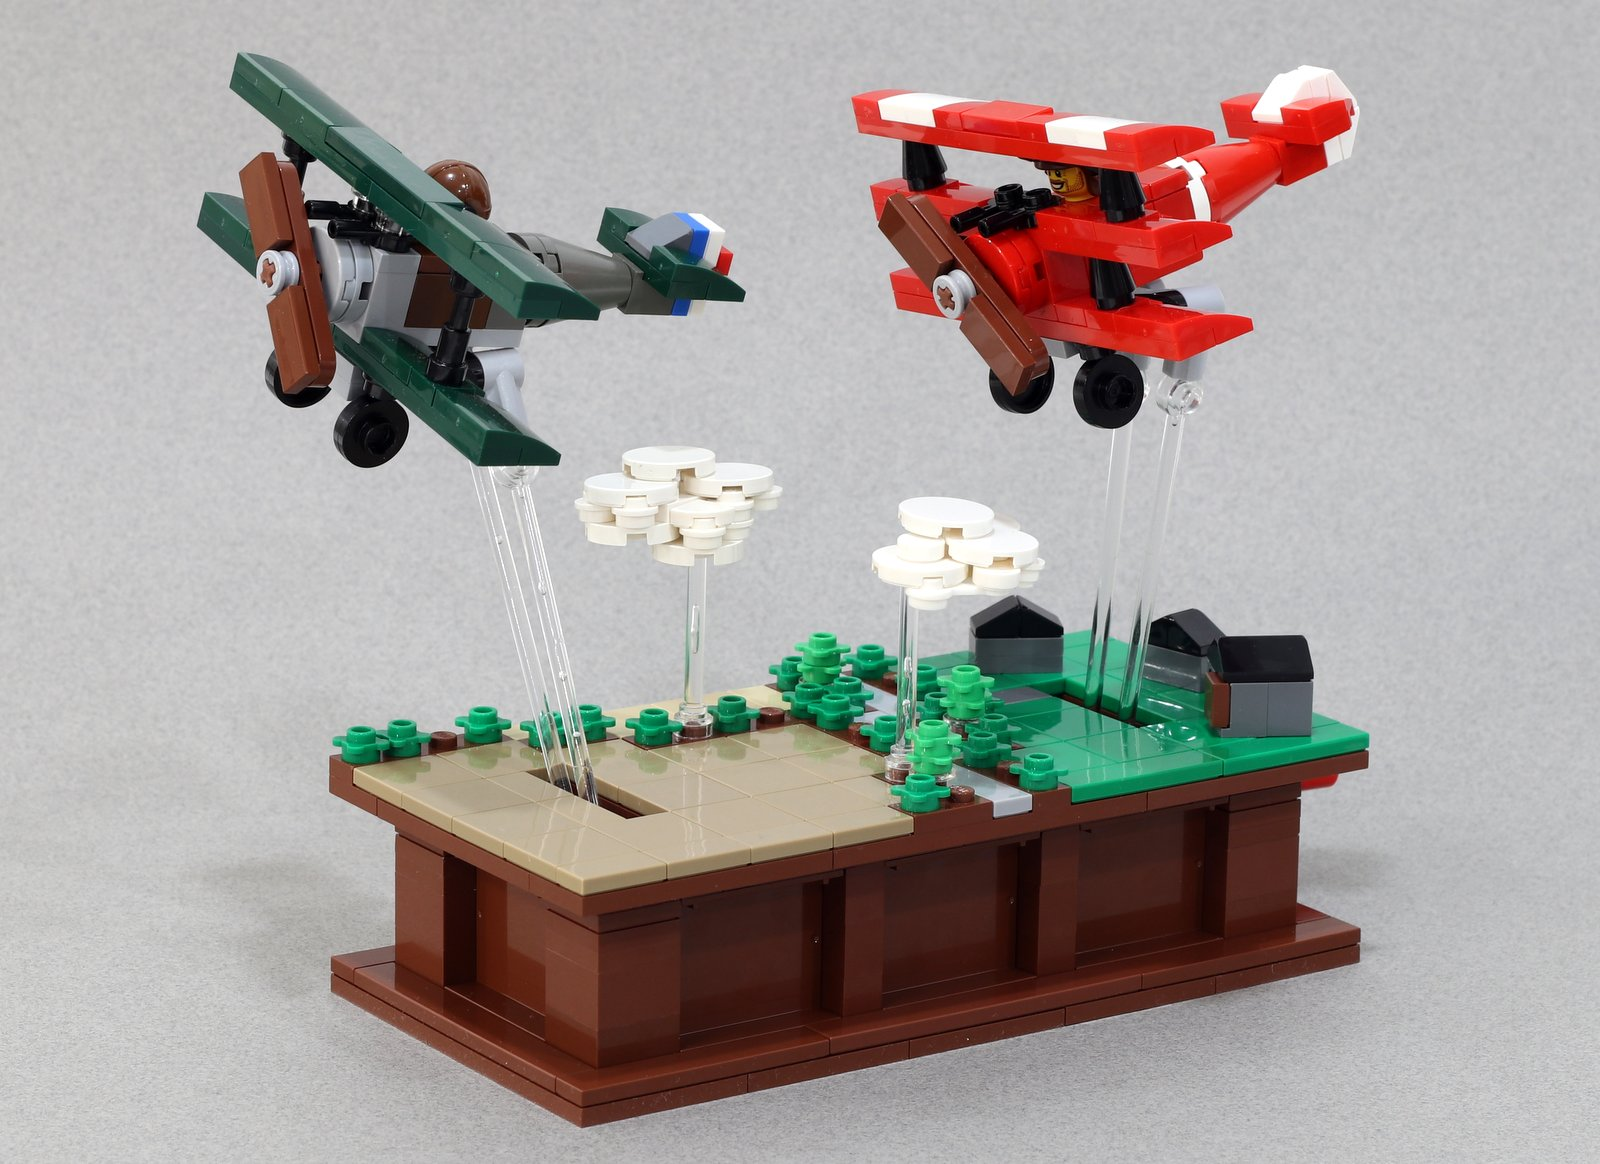 lego-ideas-pursuit-of-flight-jkbrickworks zusammengebaut.com